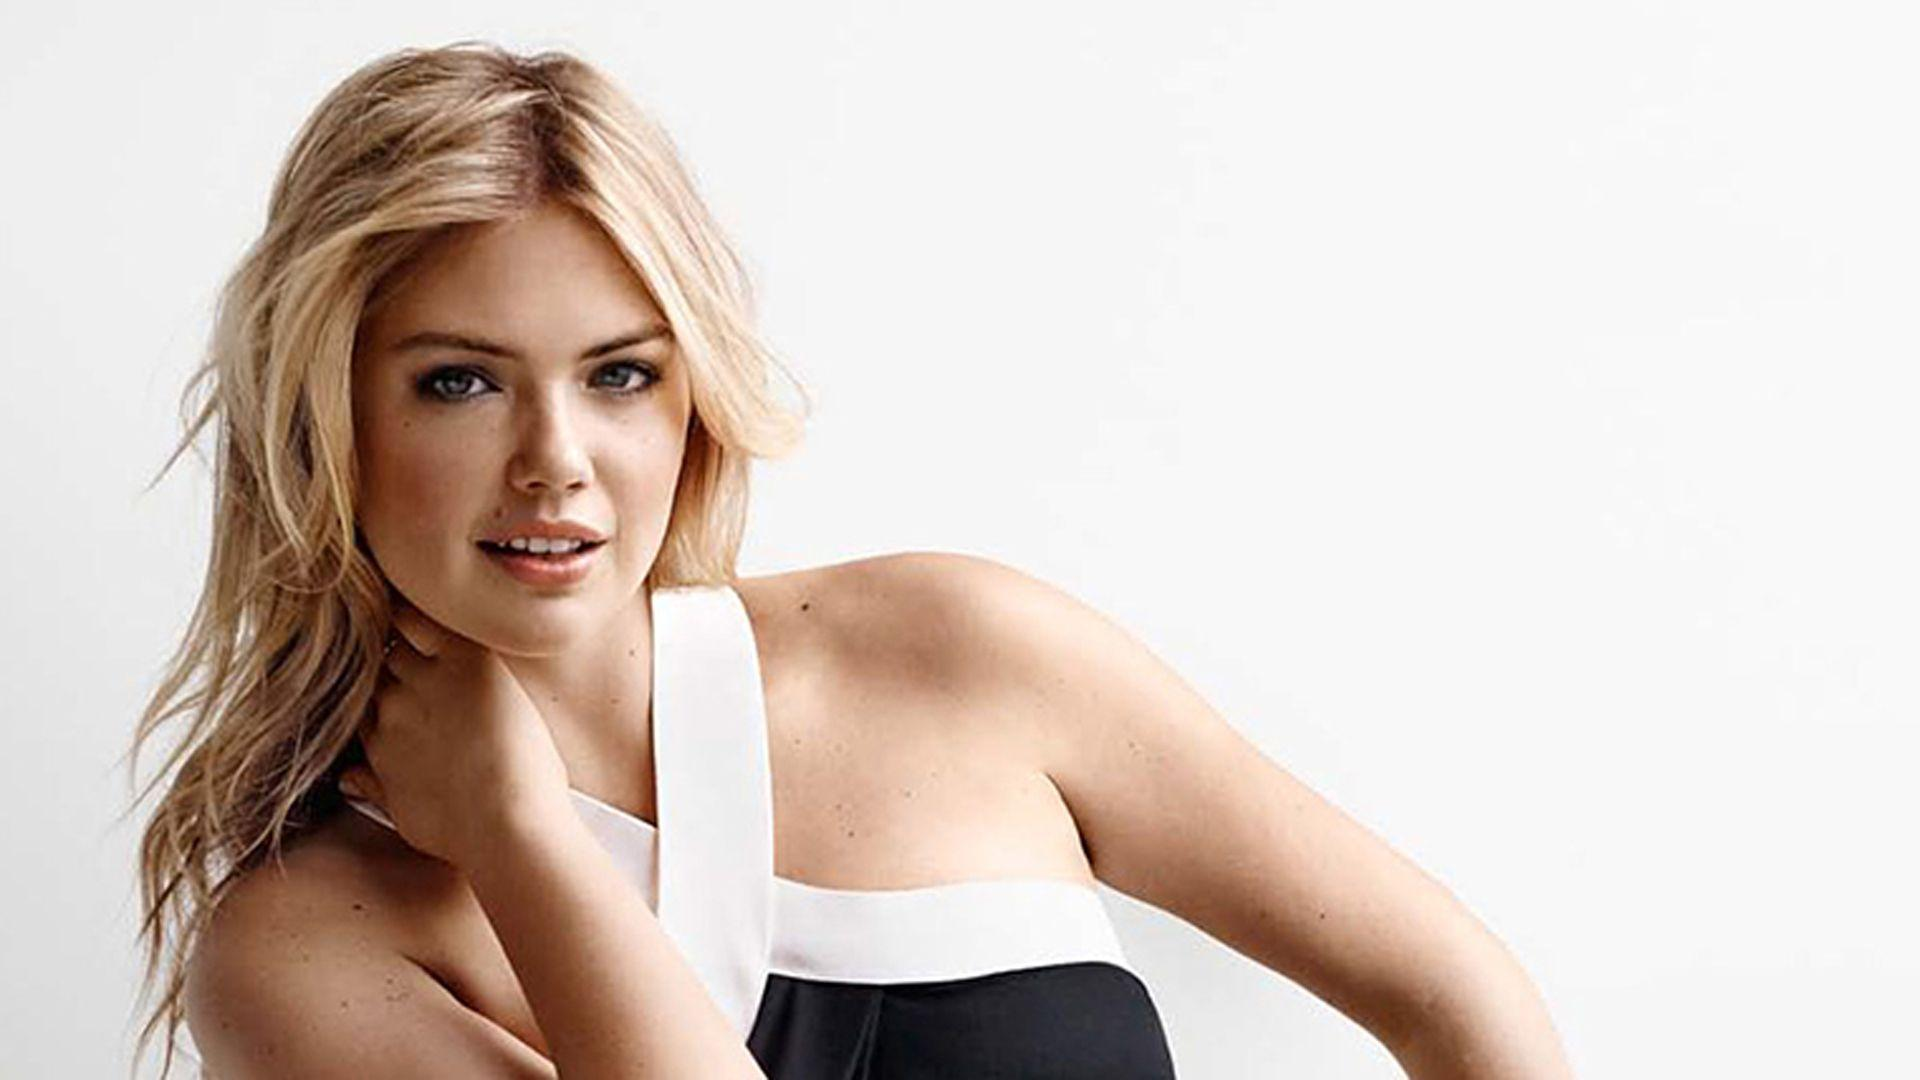 Katherine Elizabeth Upton born June 10 1992 is an American model and actress Upton was named the Sports Illustrated Swimsuit Issue Rookie of the Year following